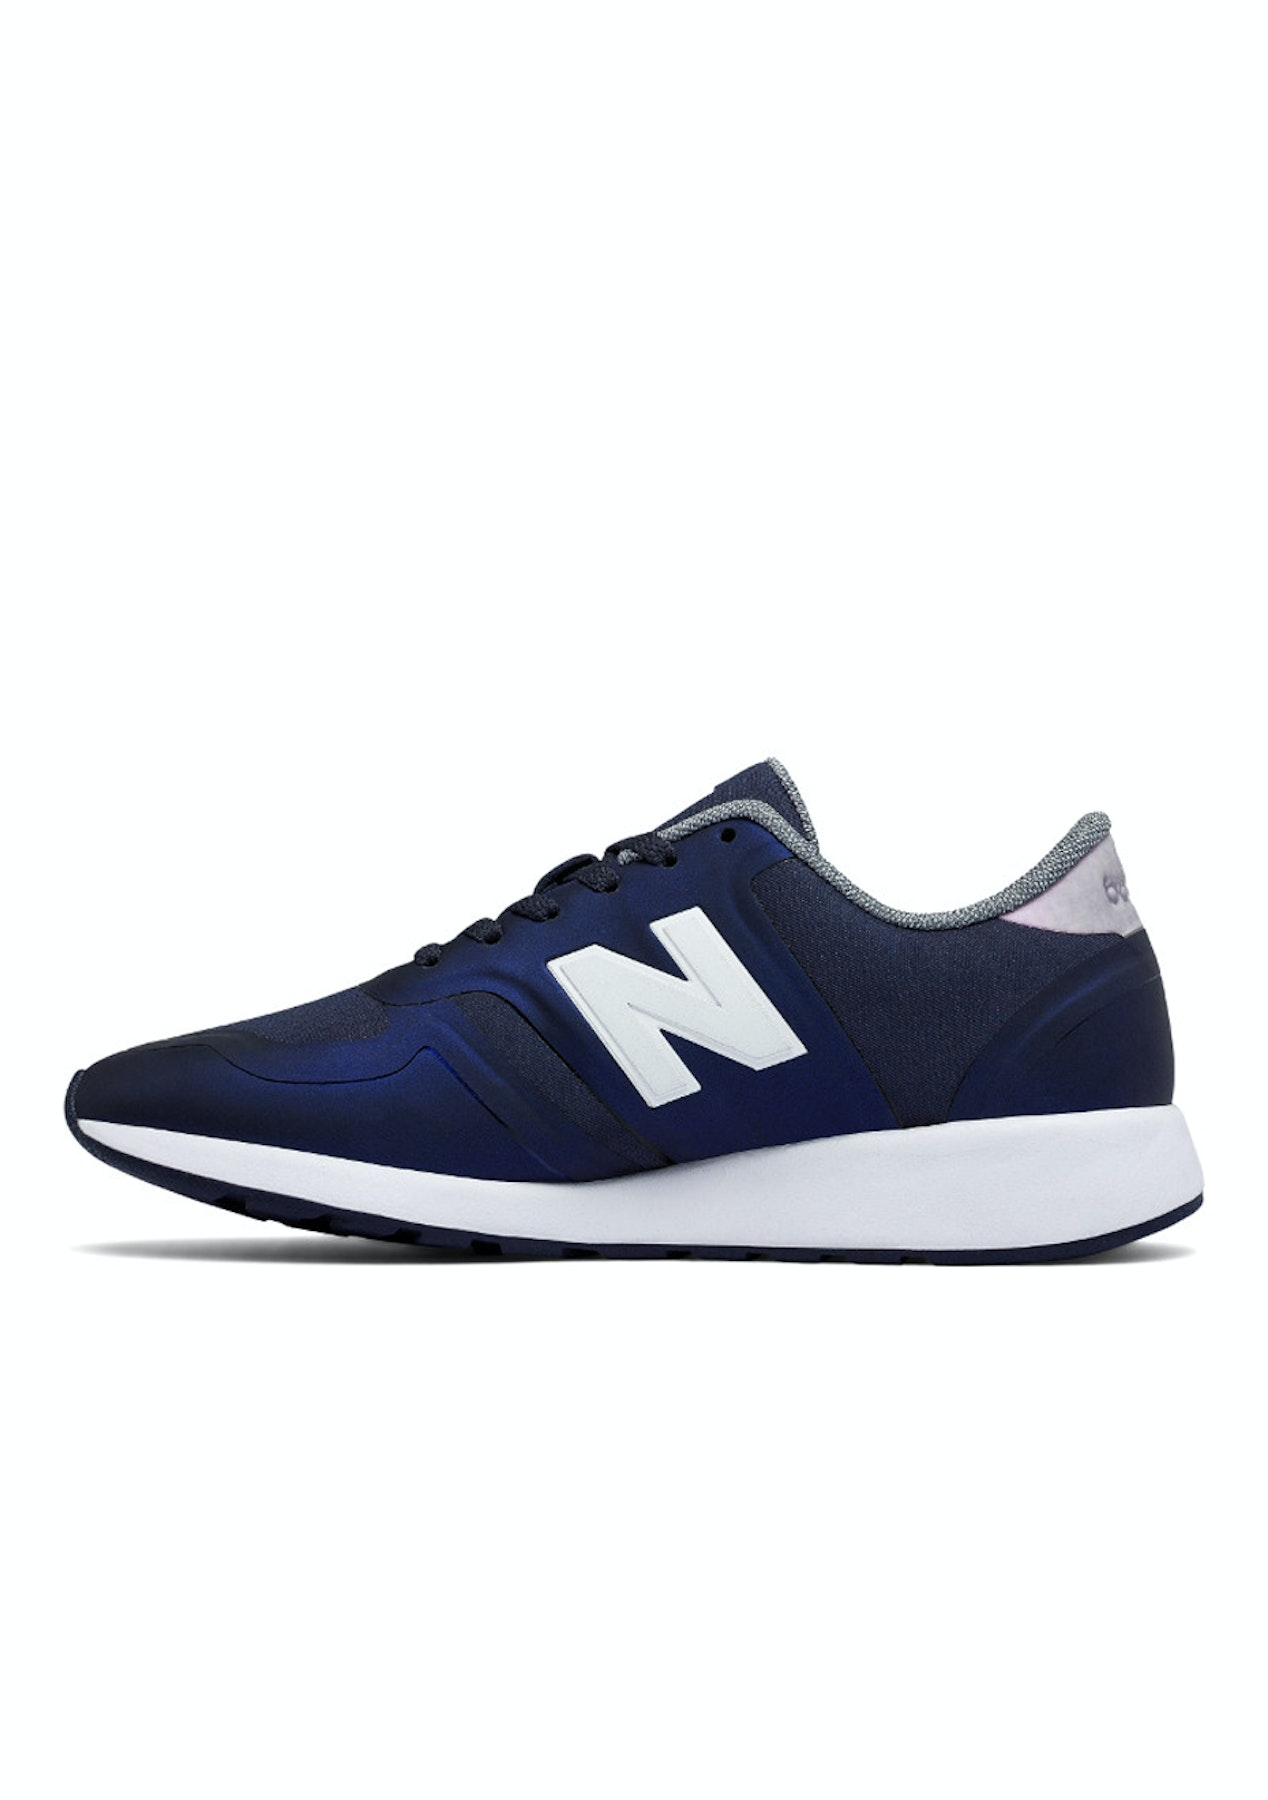 04aa8d8c3b New Balance - Womens 420 - Navy   White - New Balance Encore - Onceit